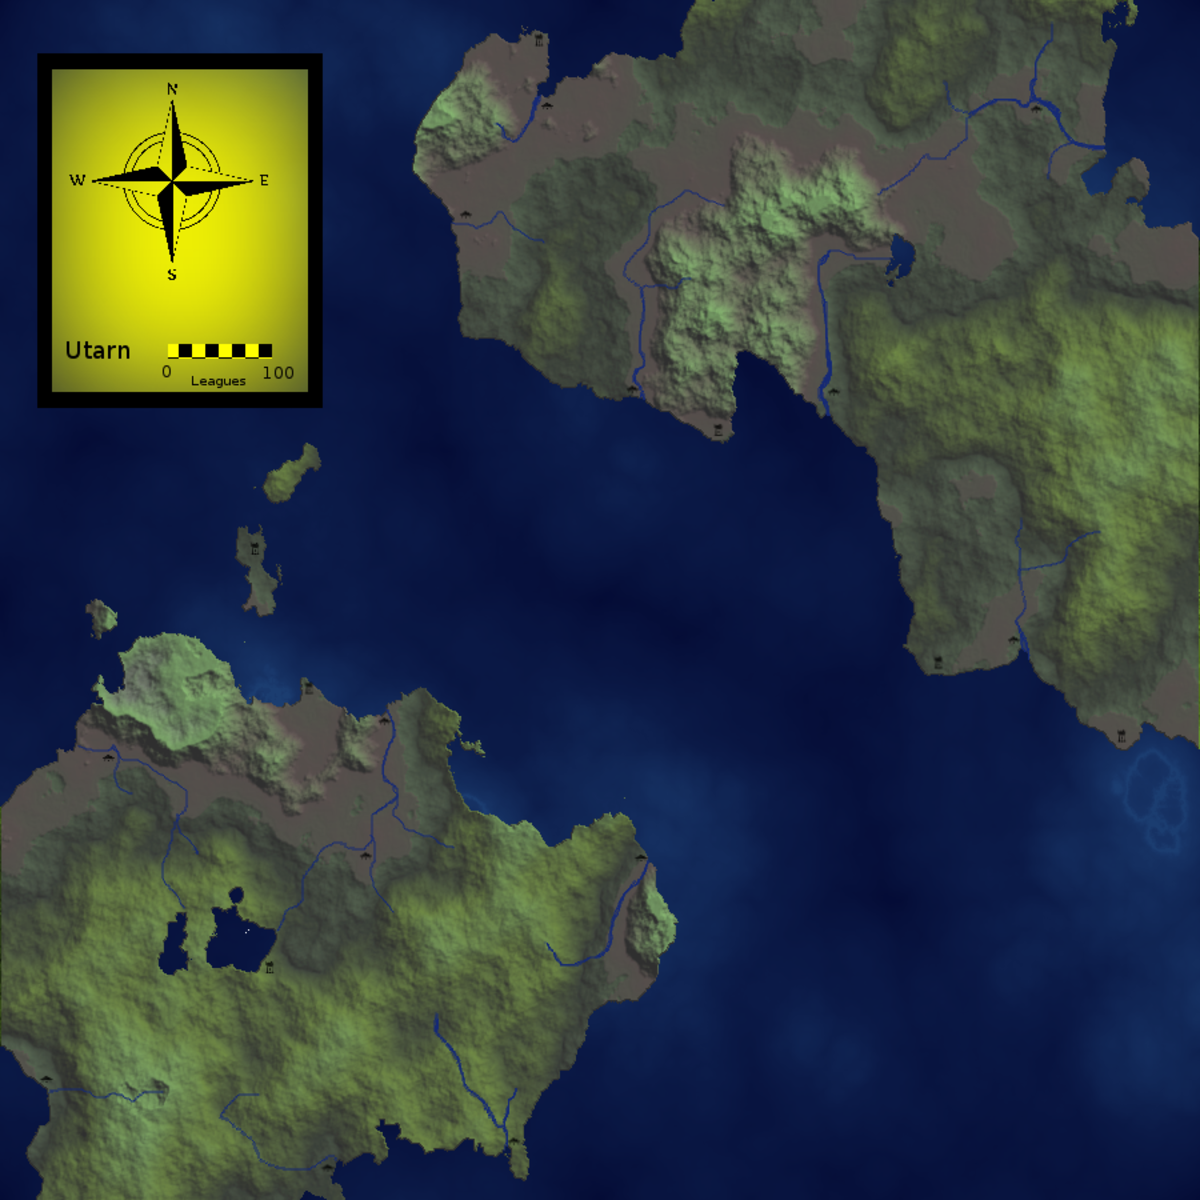 Creating Fantasy Maps For D&D With GIMP 2.8